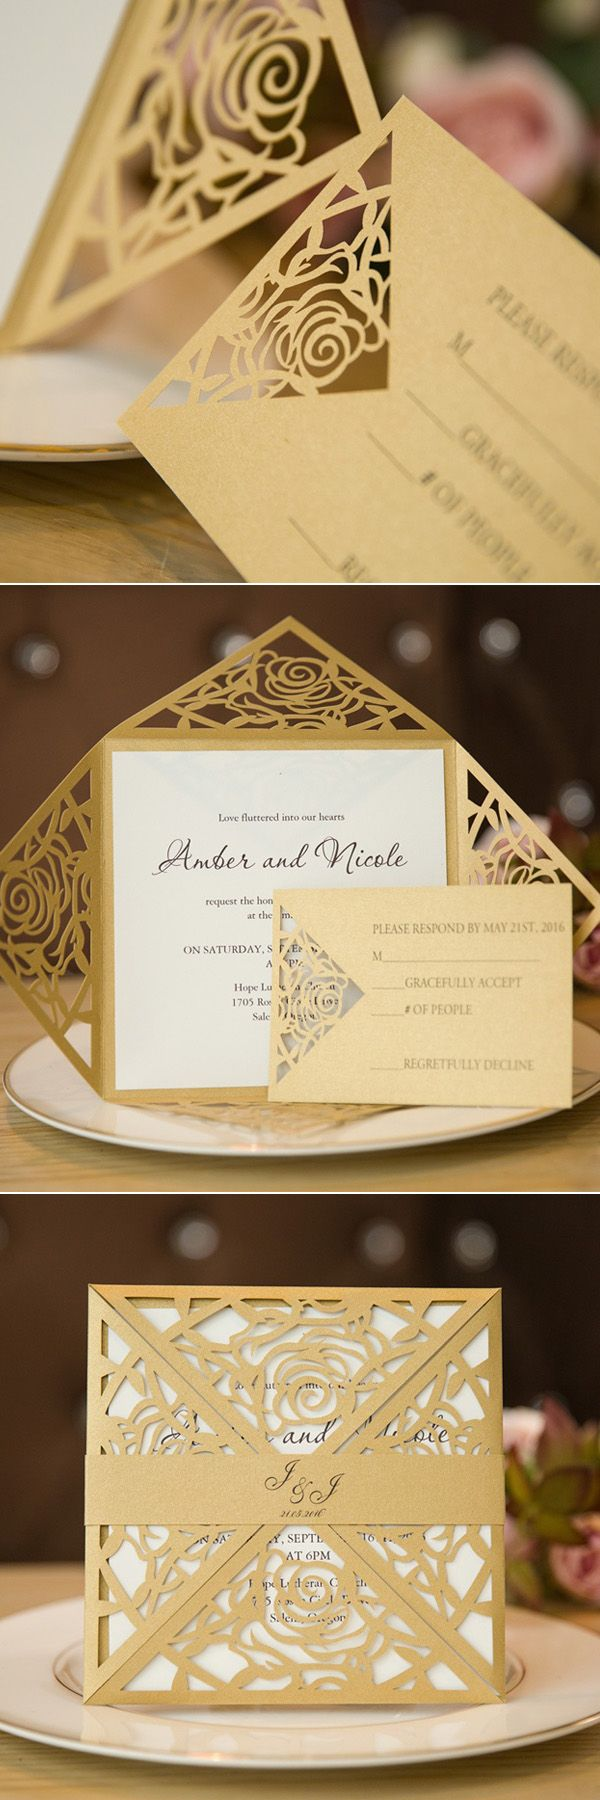 elegant gold laser cut wedding invitations with